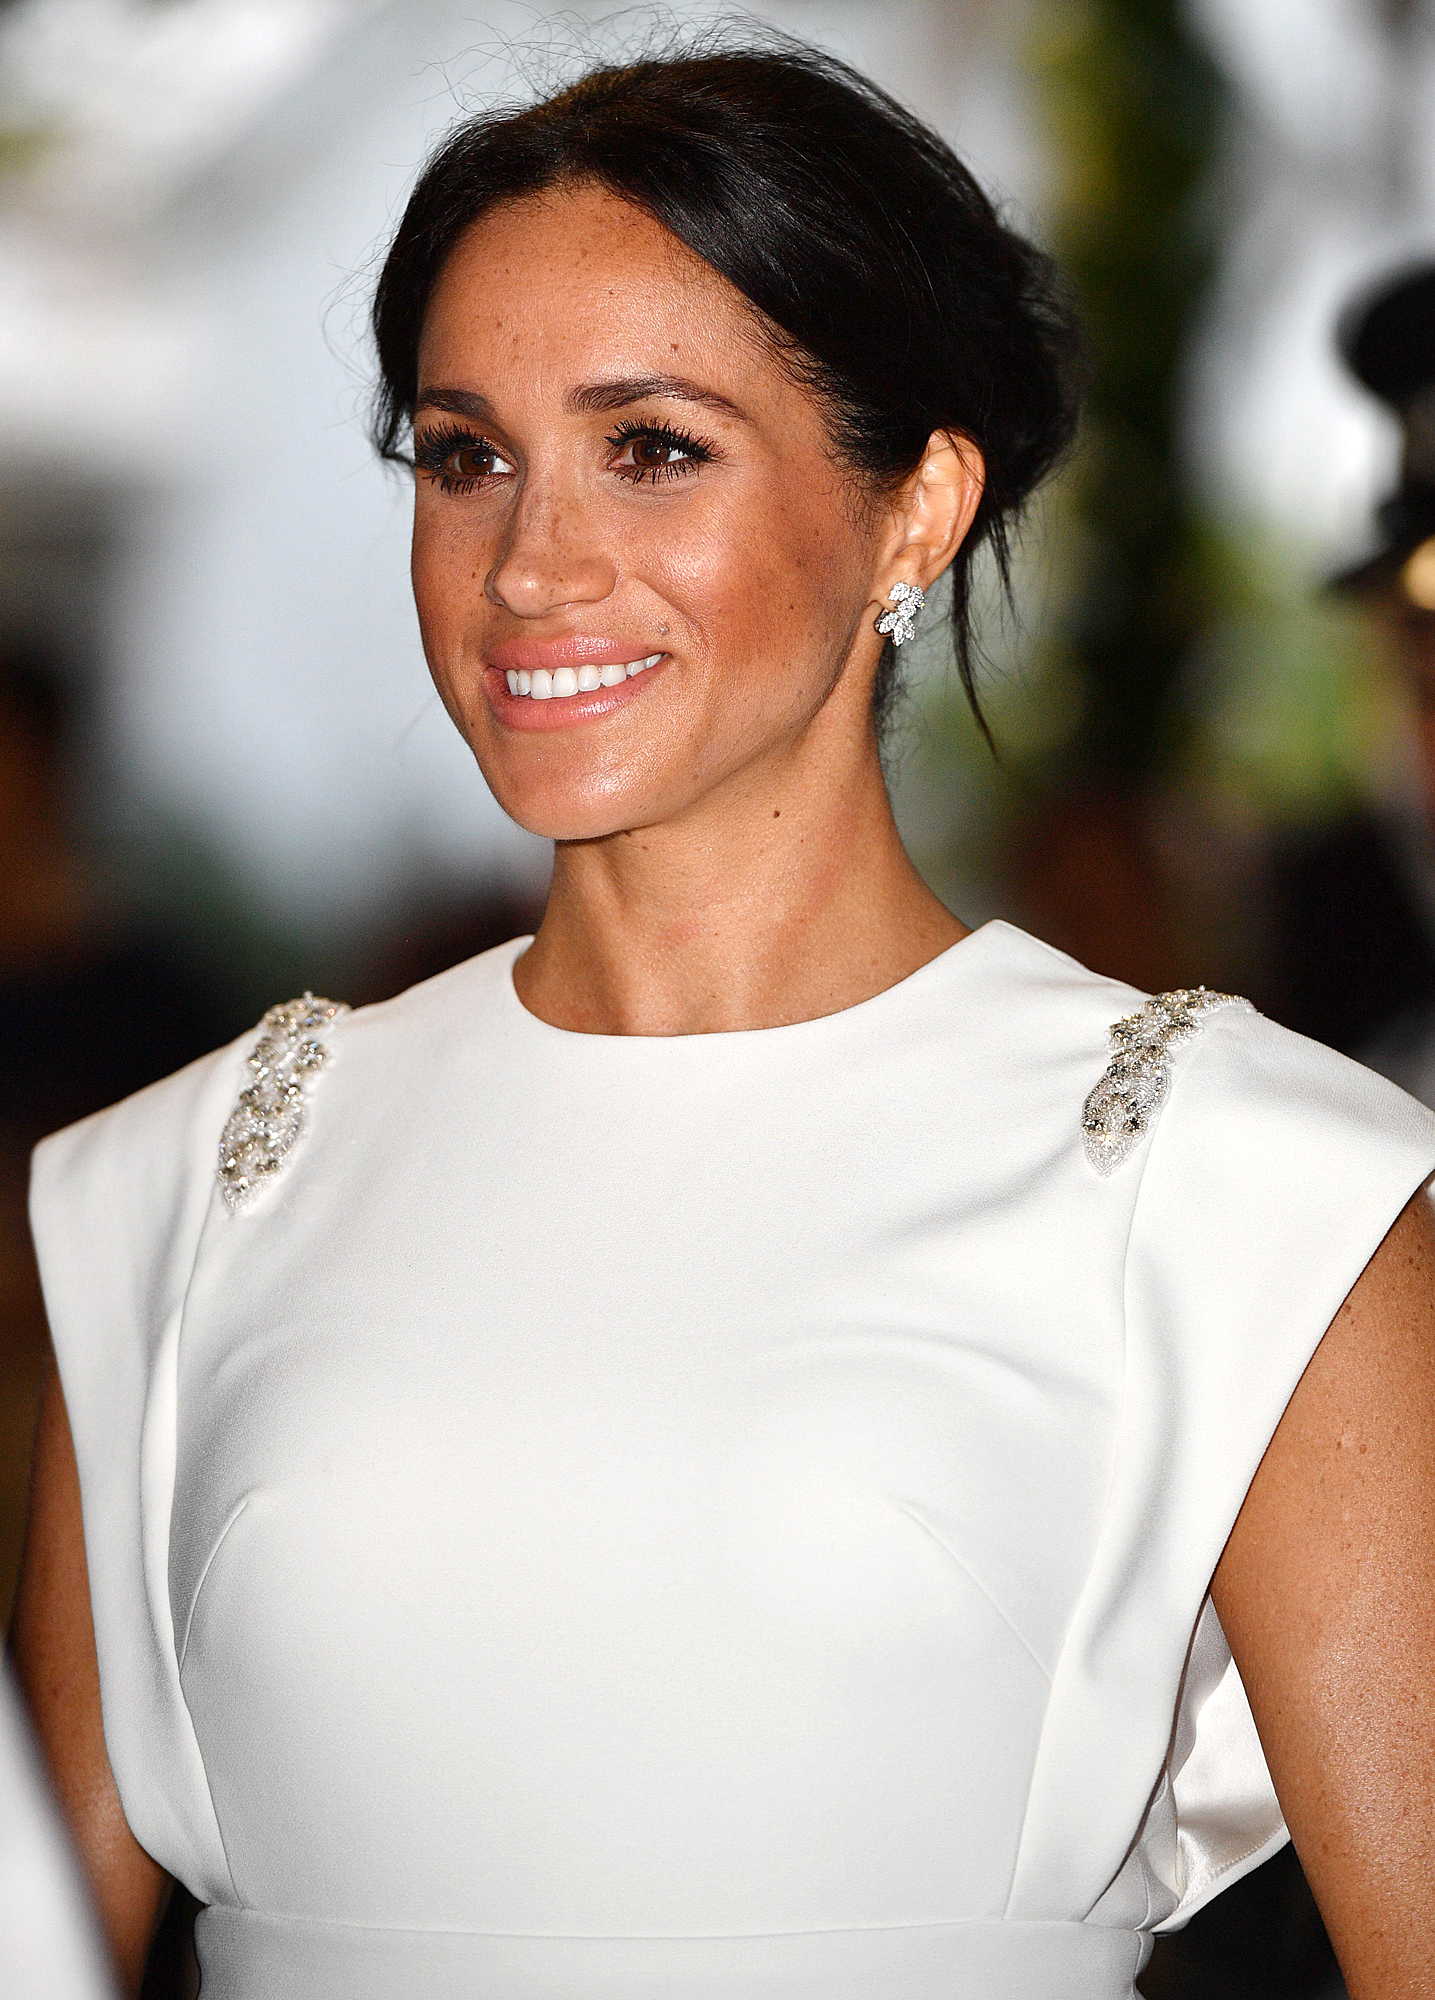 Prince Harry and Meghan Duchess of Sussex tour of Tonga - 25 Oct 2018